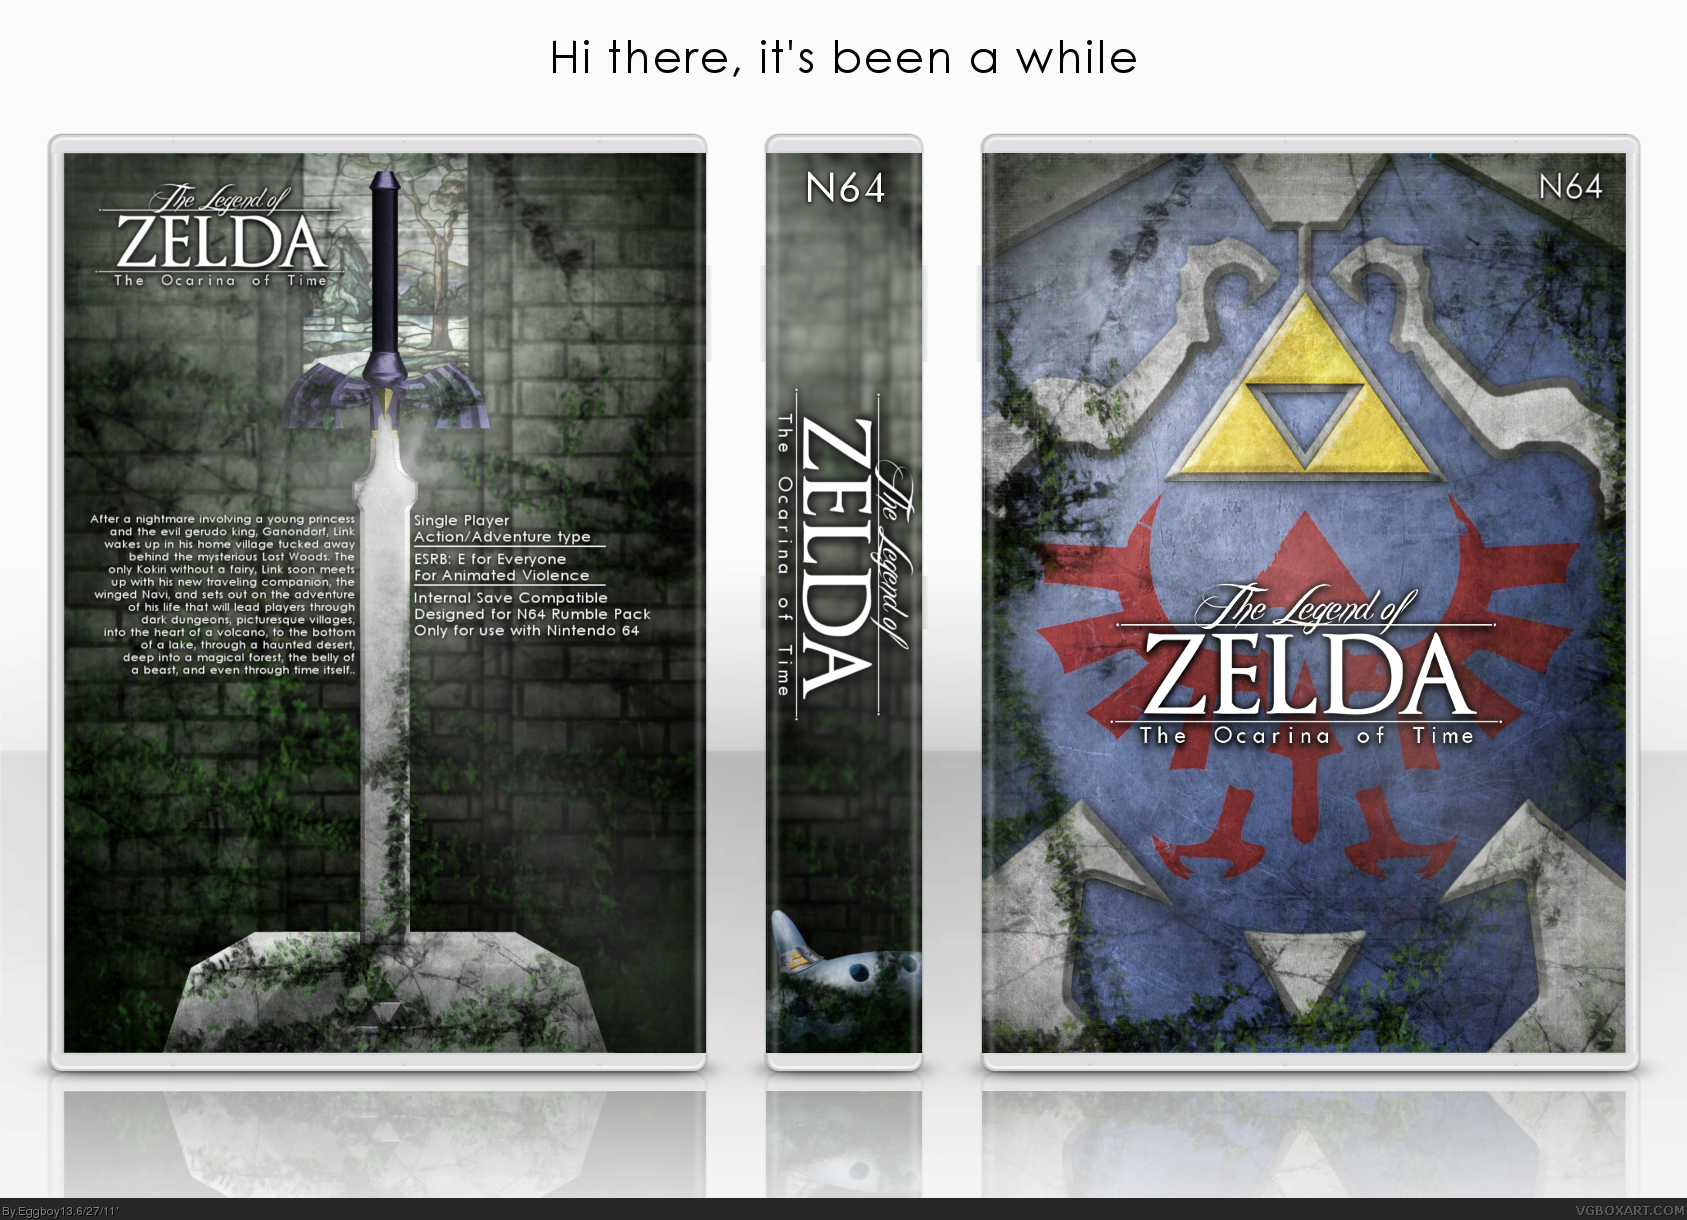 The Legend of Zelda: Ocarina of Time box cover